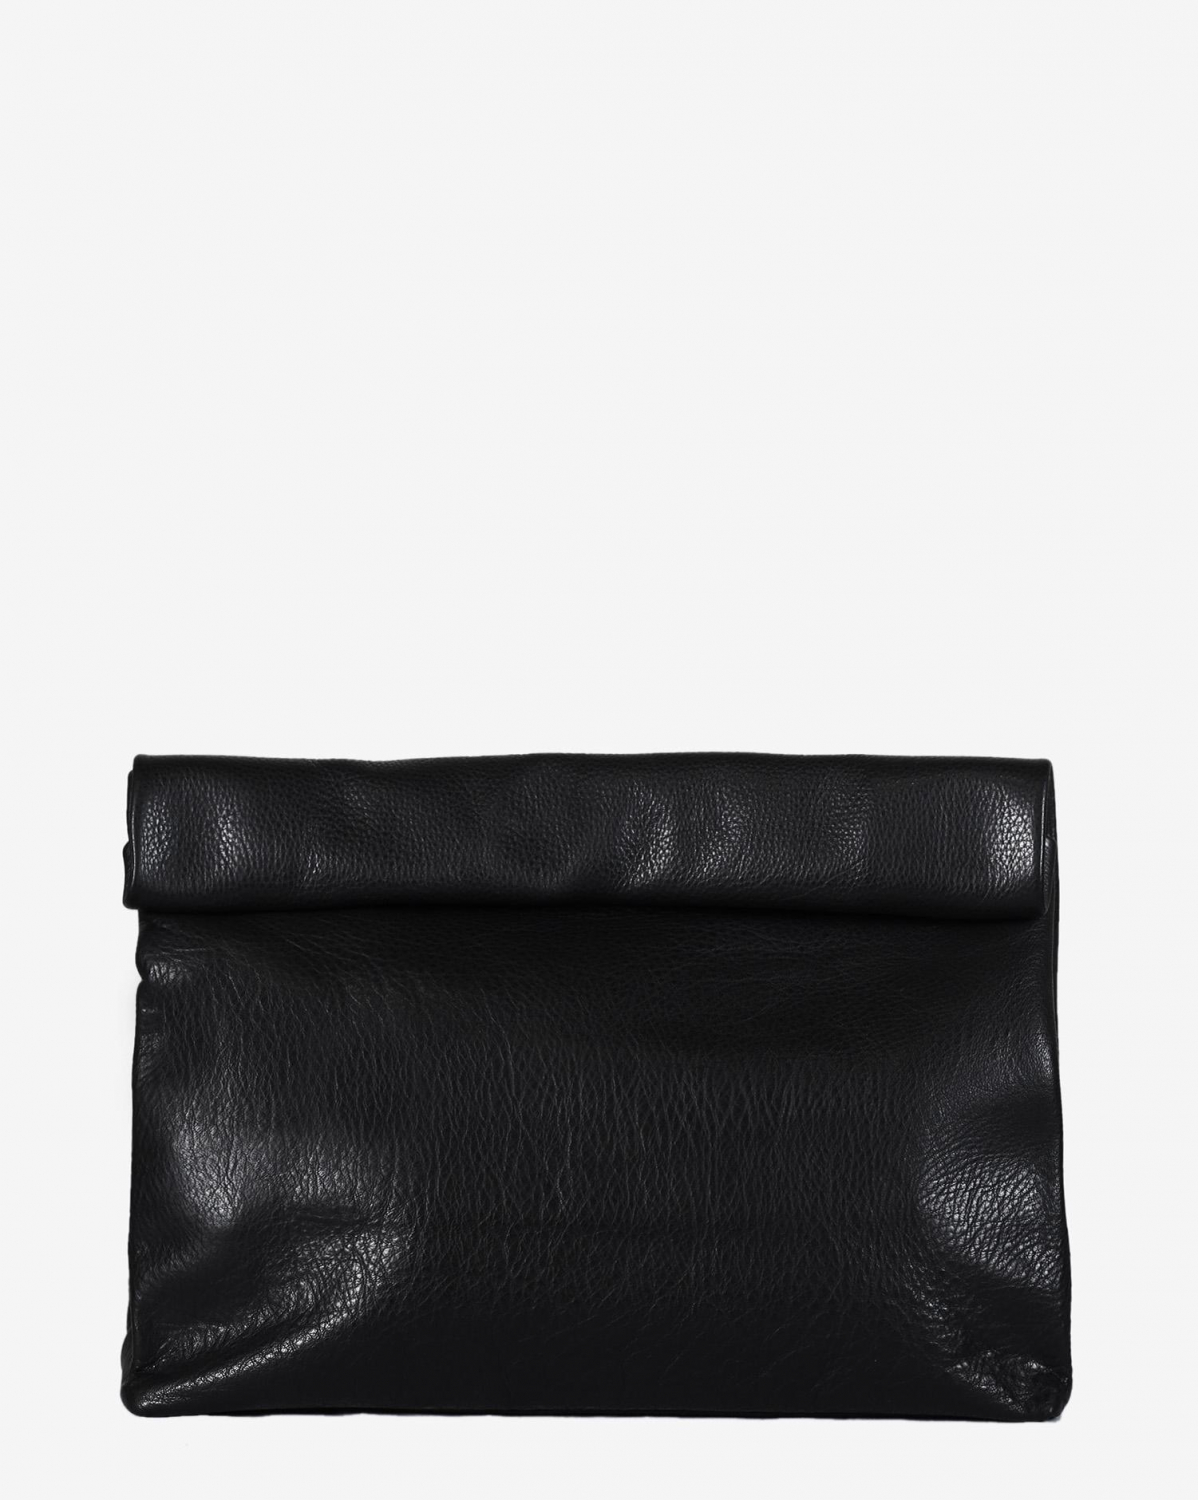 Marie Turnor Lunch Clutch - Pebble Black